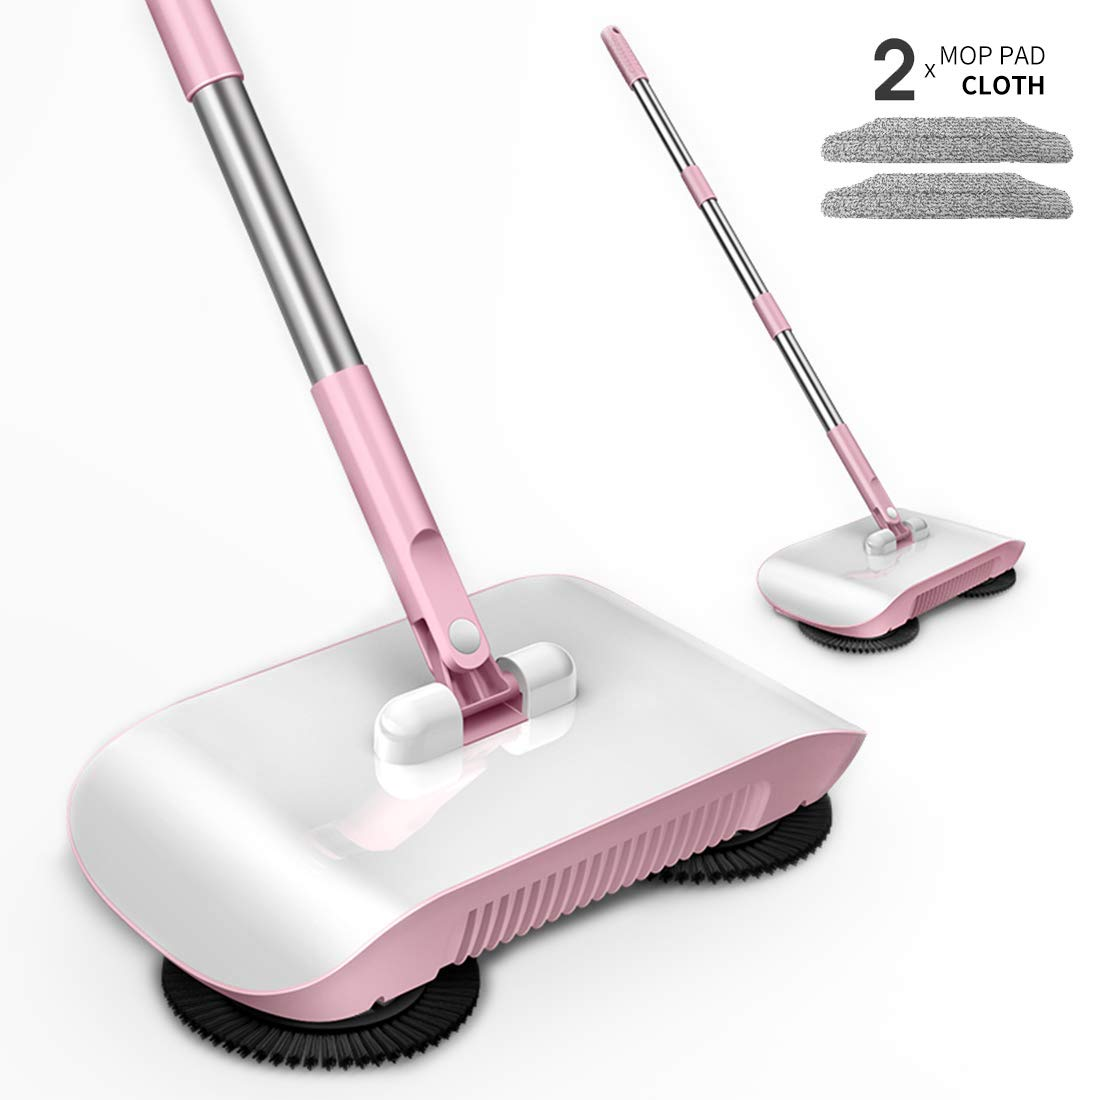 Rayzi Household Cleaning 360 Hand Push Automatic Sweeper Broom - Including Broom & Dustpan & Trash Bin - Non Electric for Tile,Marble, and Hardwood, 2 x Cloth (Pink)